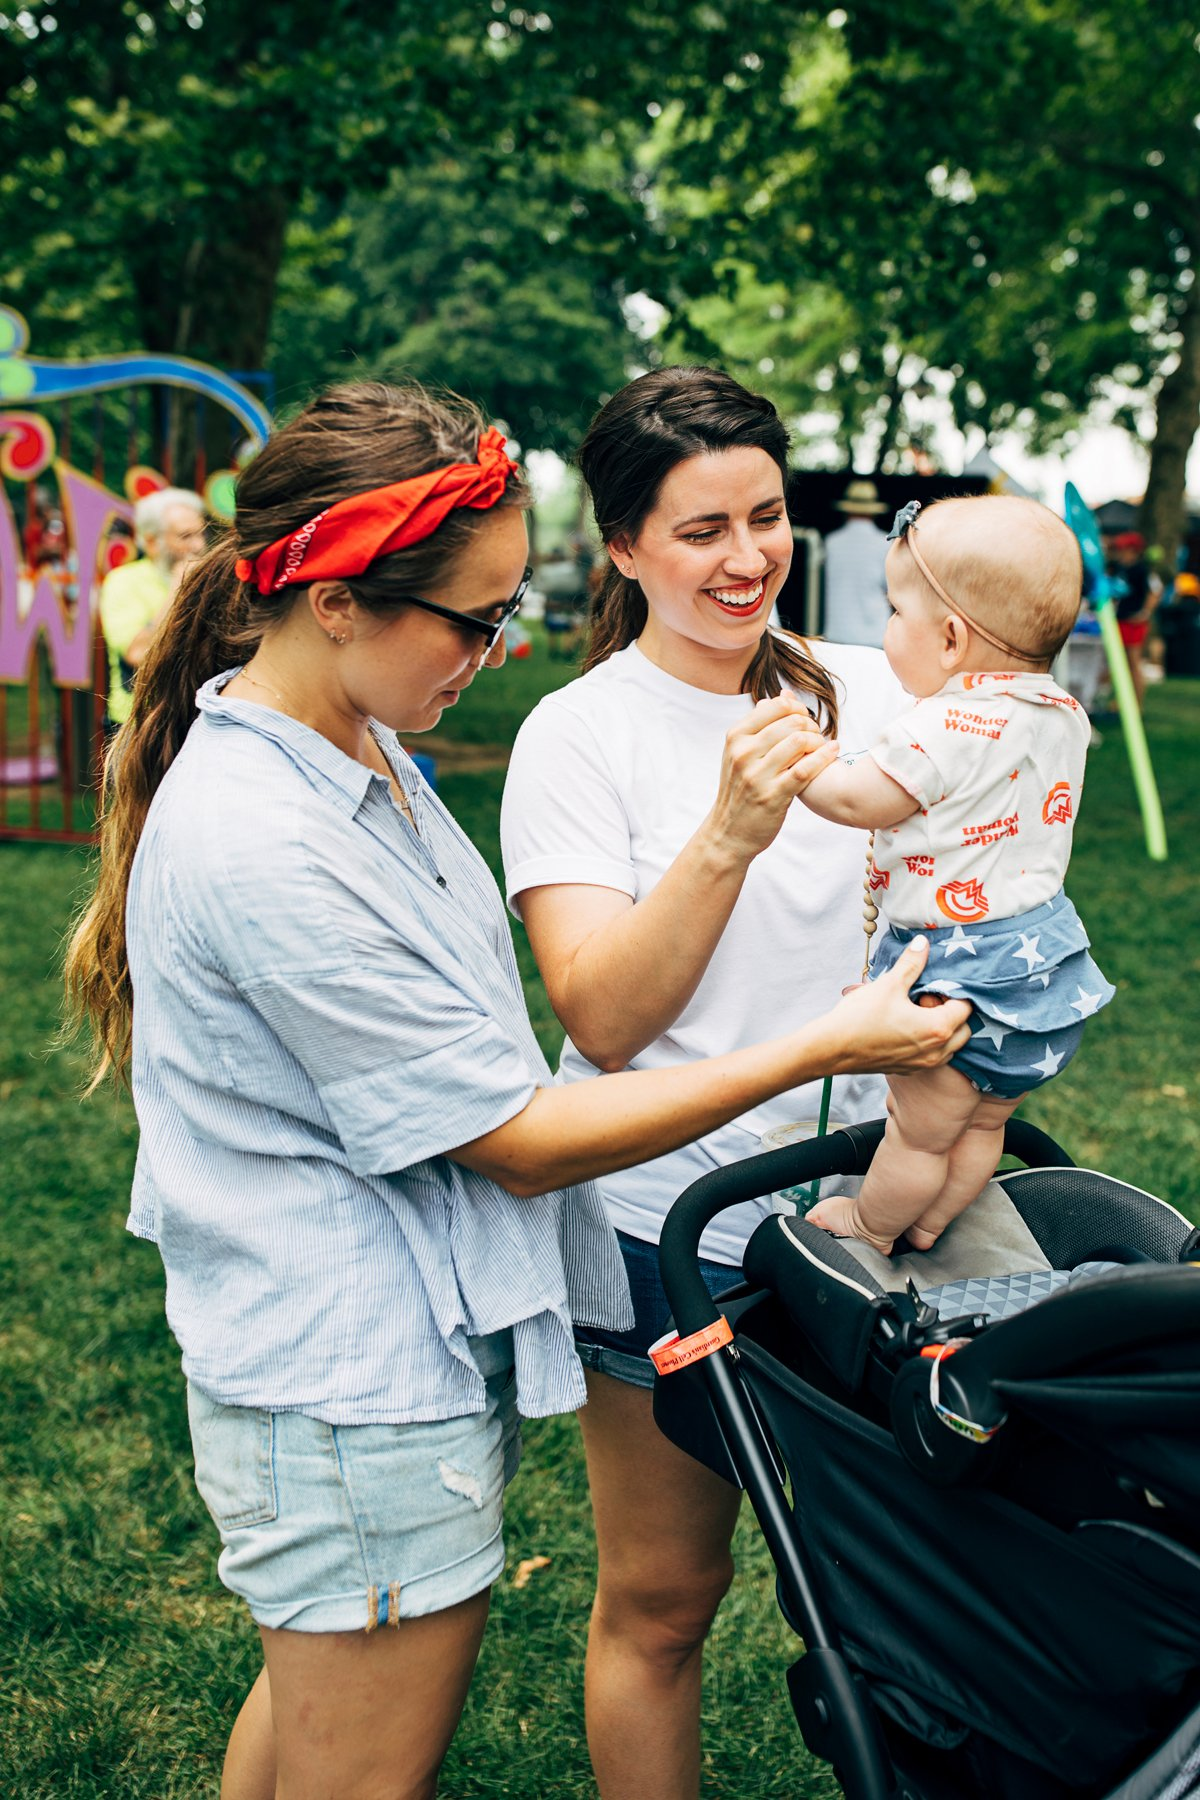 walkinlove_fourthofjuly_lititzspringspark_2018-20.jpg